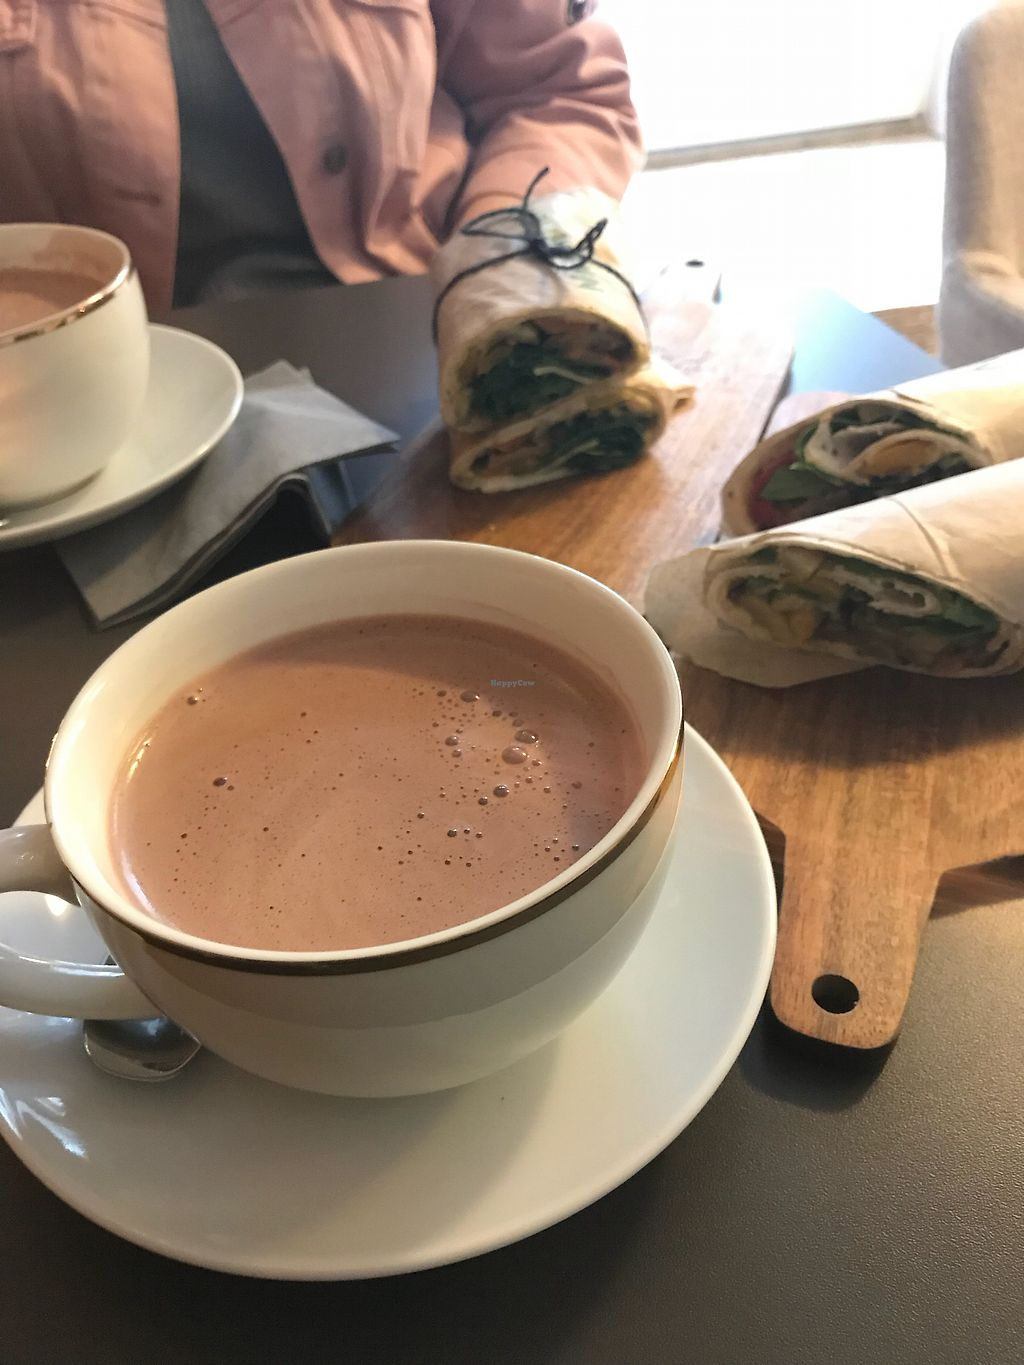 """Photo of SOUL Vegan Coffee Bar  by <a href=""""/members/profile/Philearny"""">Philearny</a> <br/>Heiße Schokolade mit Mandelmilch und ein Hummus-Wrap <br/> October 24, 2017  - <a href='/contact/abuse/image/98256/318459'>Report</a>"""